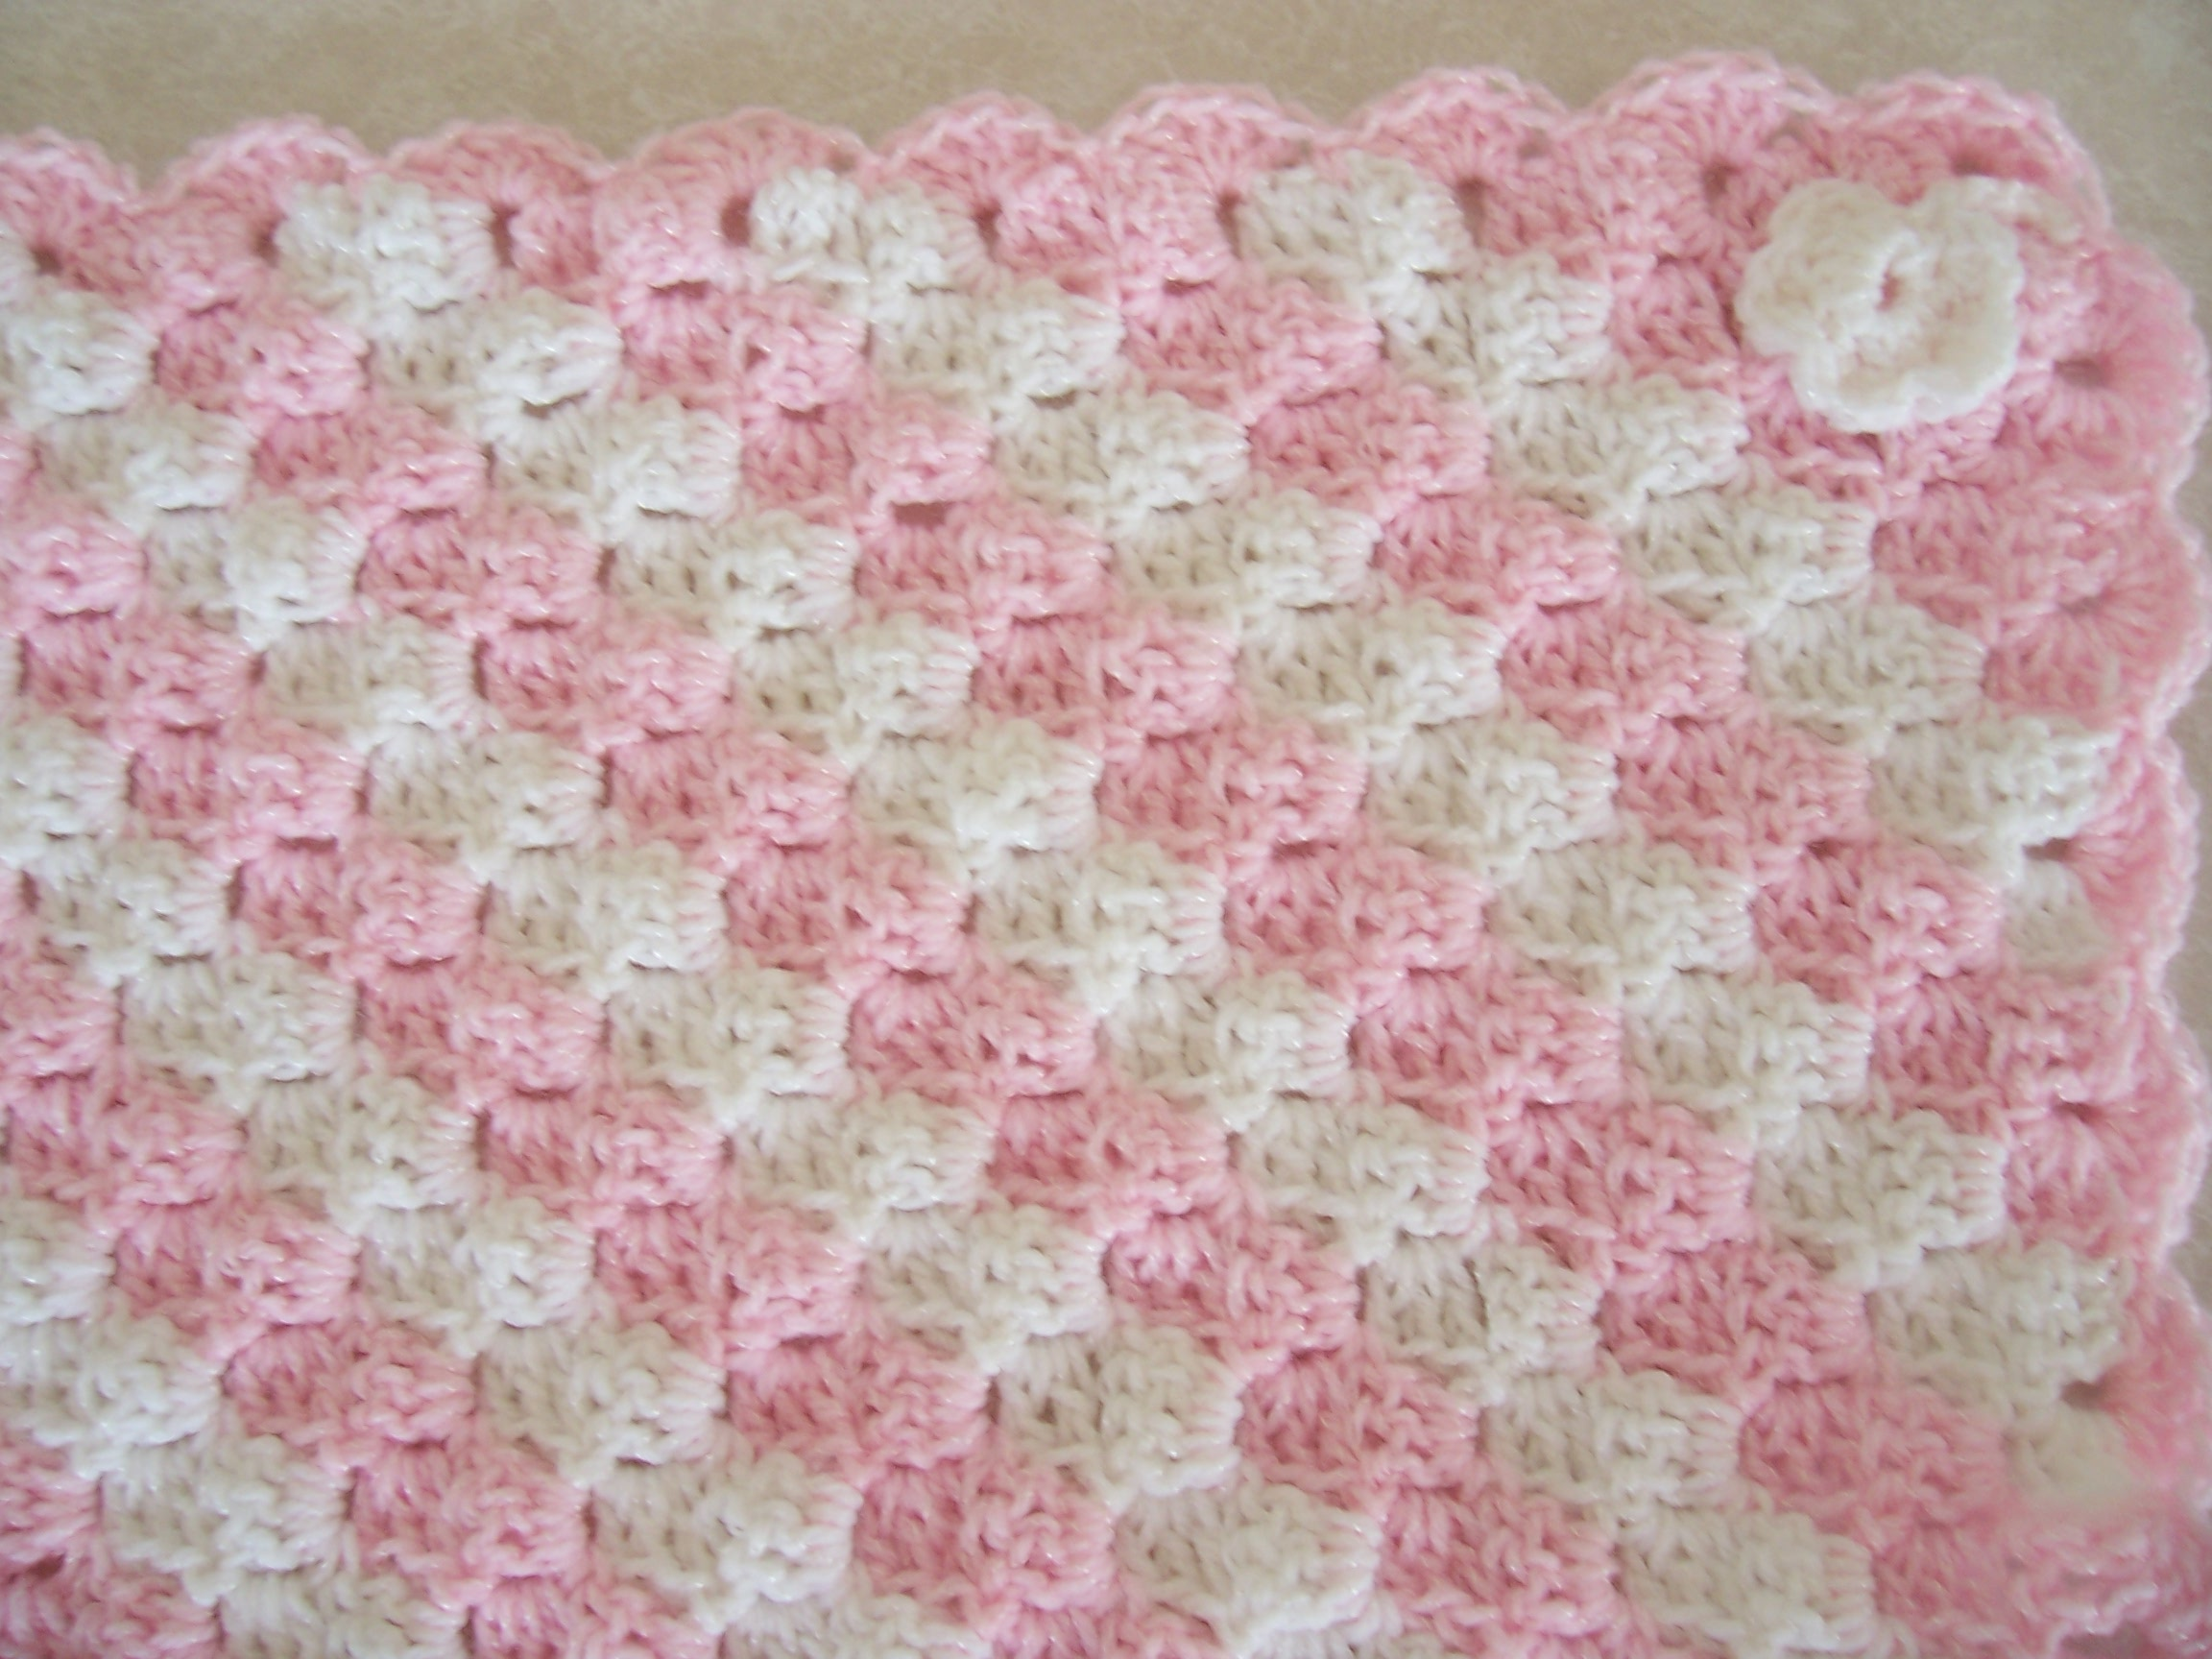 Crochet Baby Blanket : crochet baby blankets Patterns to learn how to crochet a blanket easy